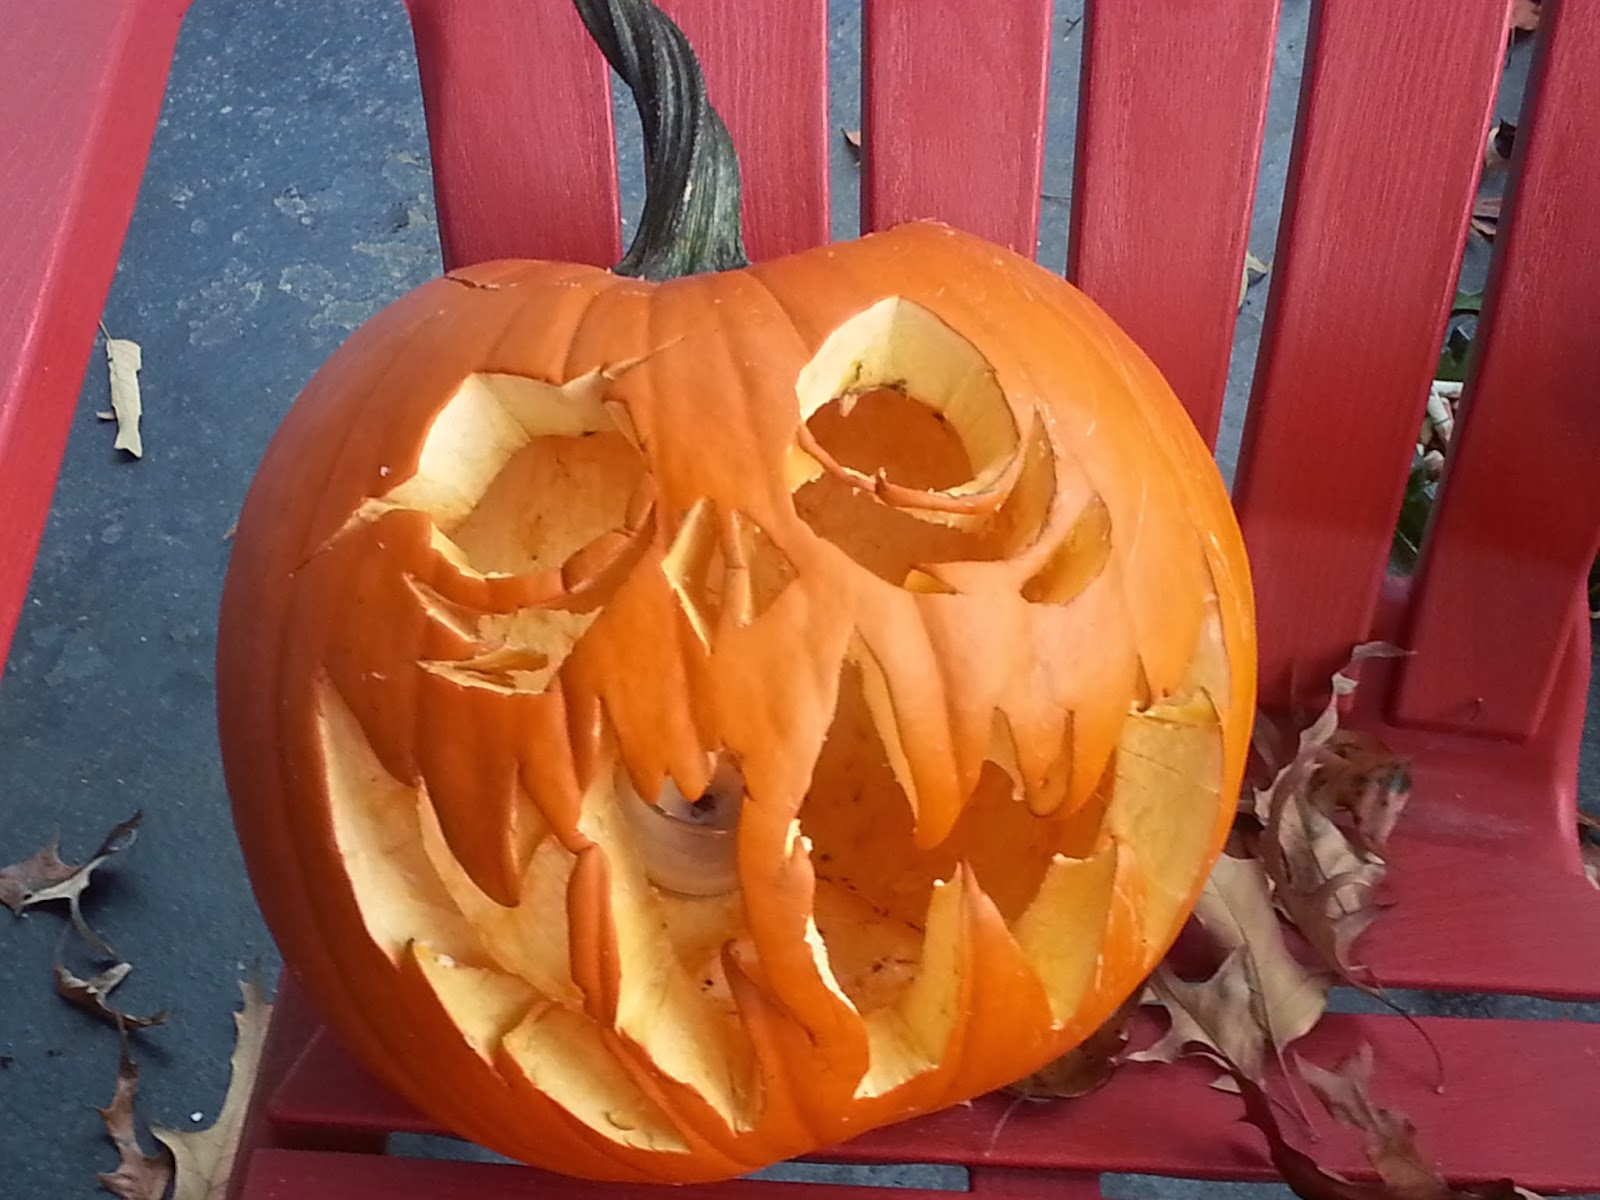 Mysterious Halloween Jack-o-lantern | Navigating Hectivity by Micki Bare